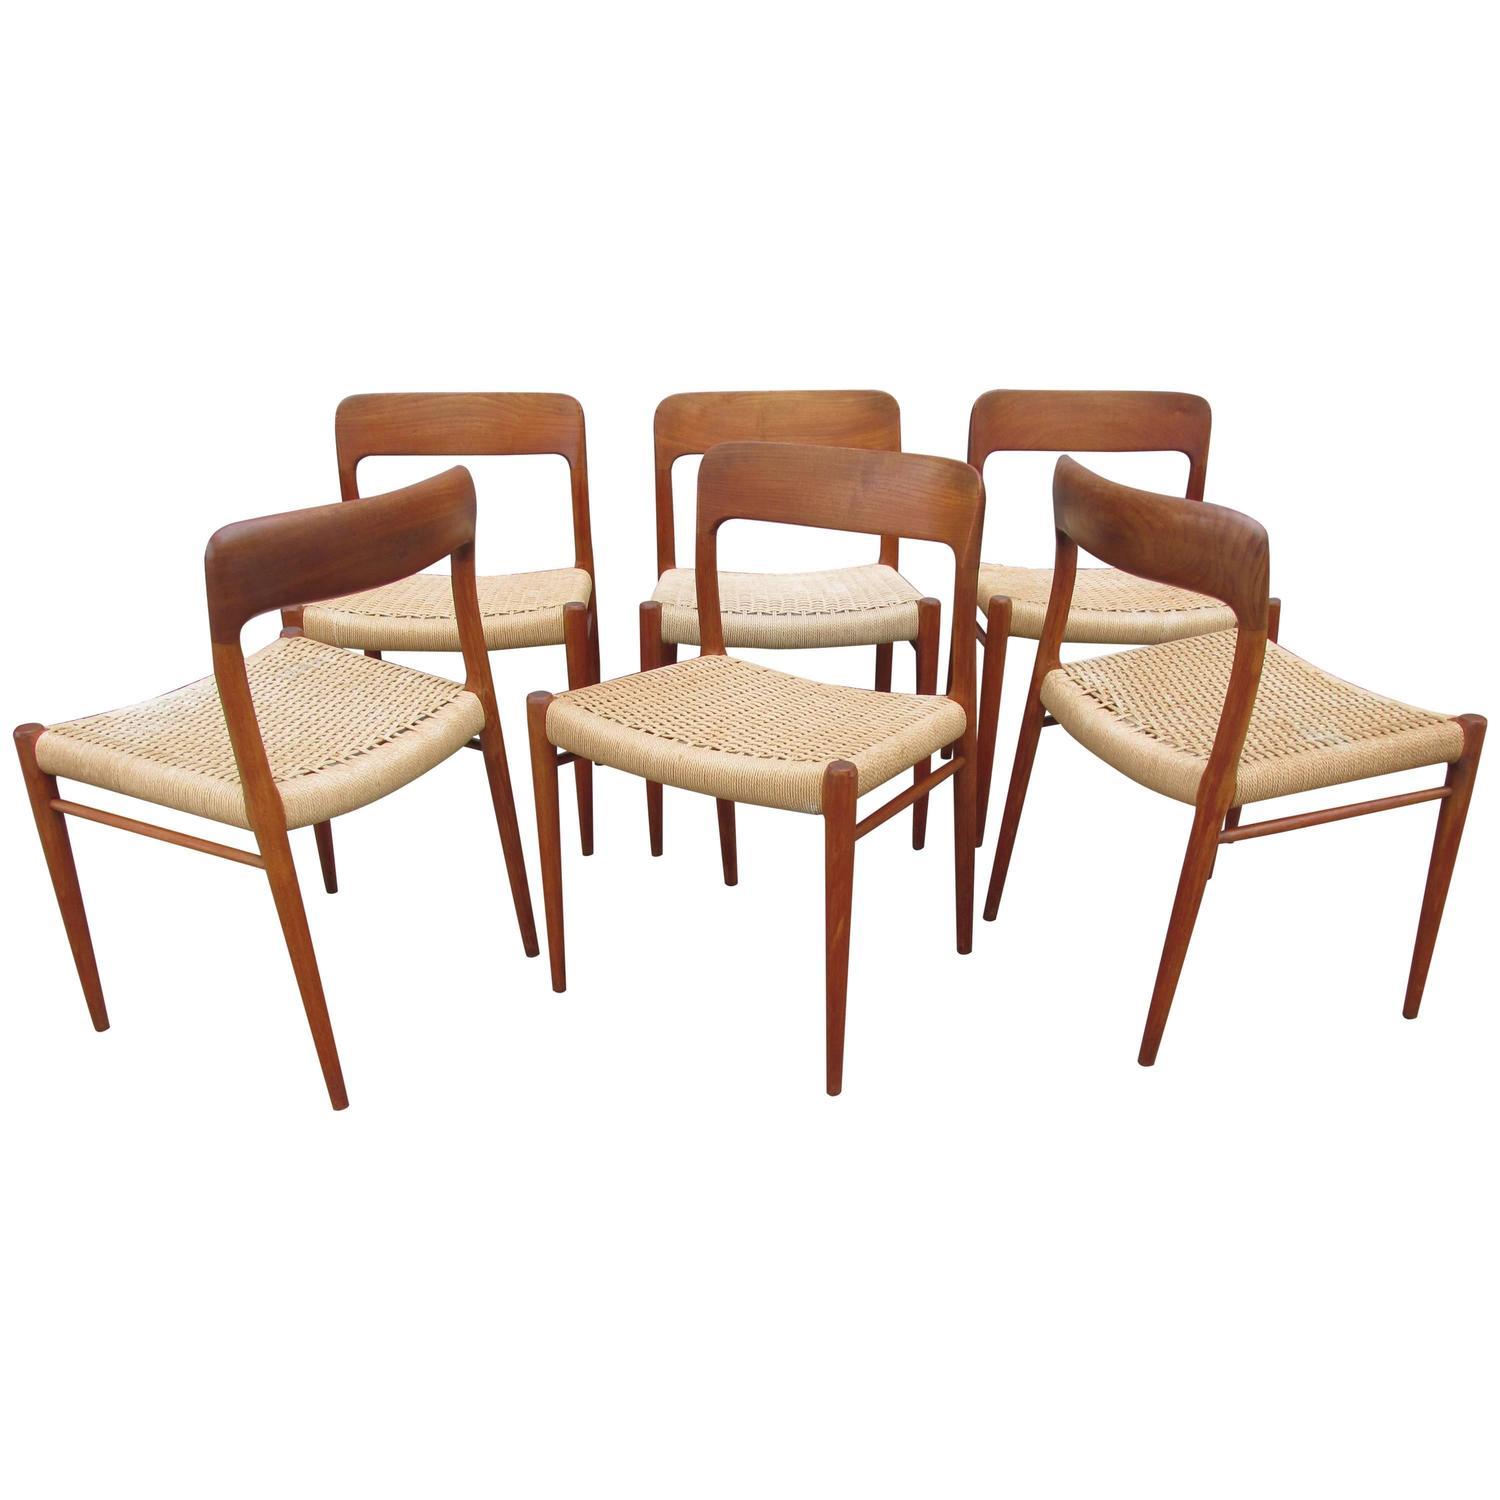 Niels Otto Moller For J L Moller Set Of Six Teak Dining Chairs At 1stdibs